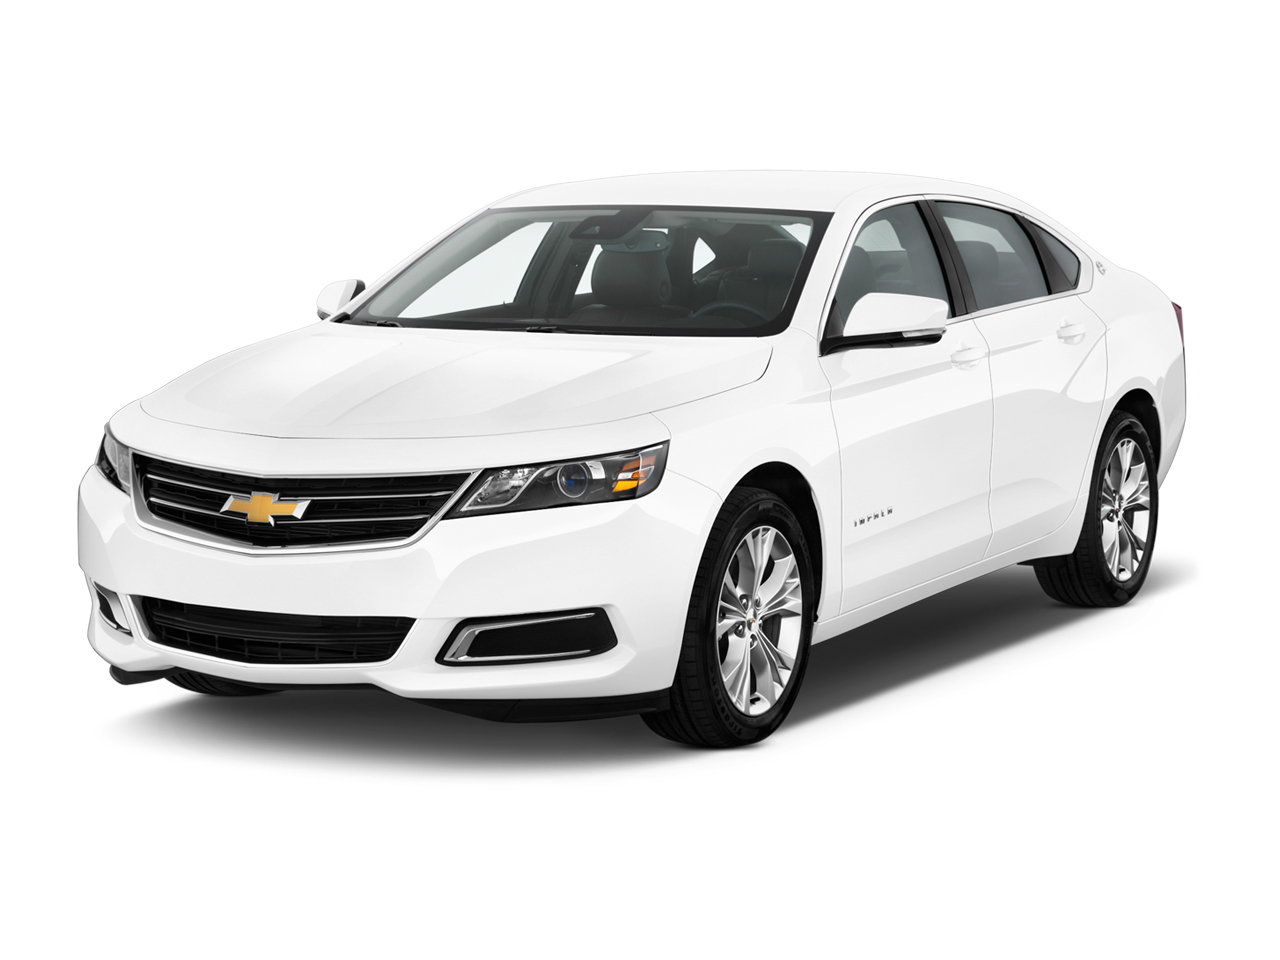 2015 Chevrolet Impala (Chevy) Review, Ratings, Specs, Prices, and